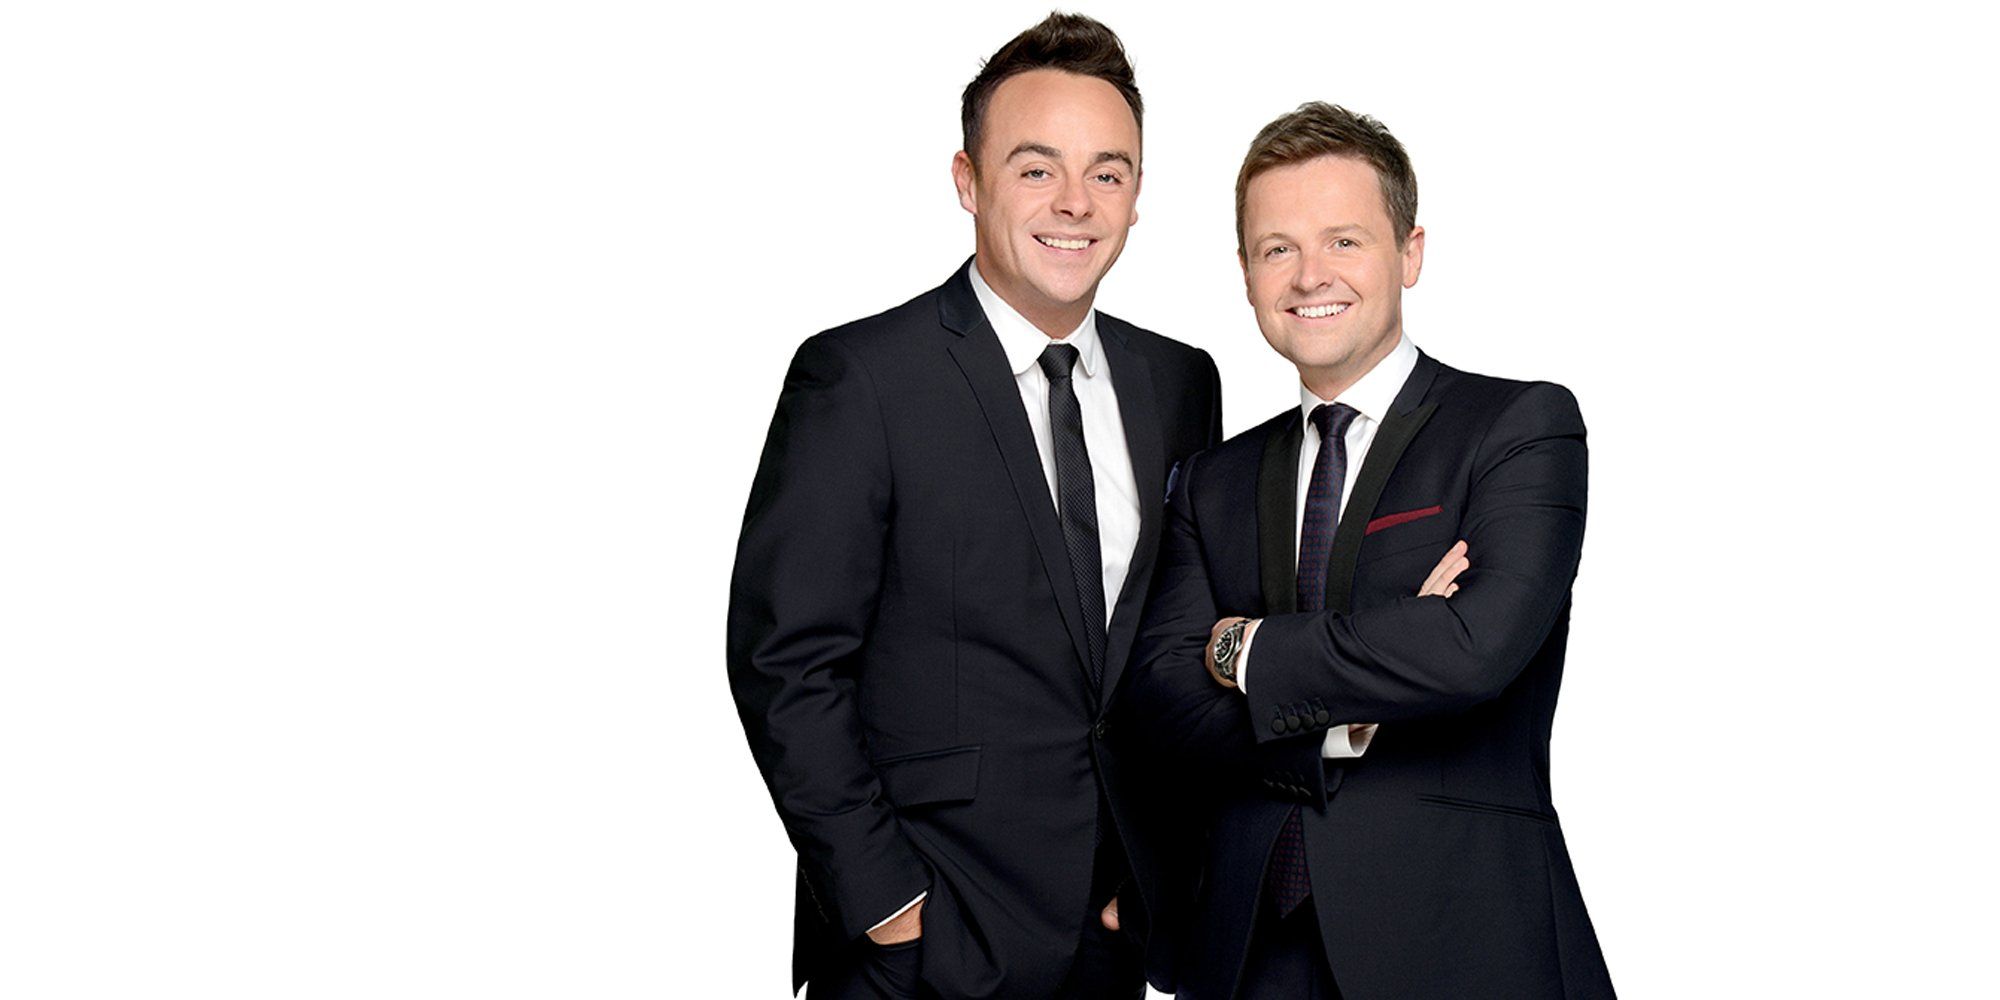 Ant & Dec to host The Queen's 90th Birthday Celebration